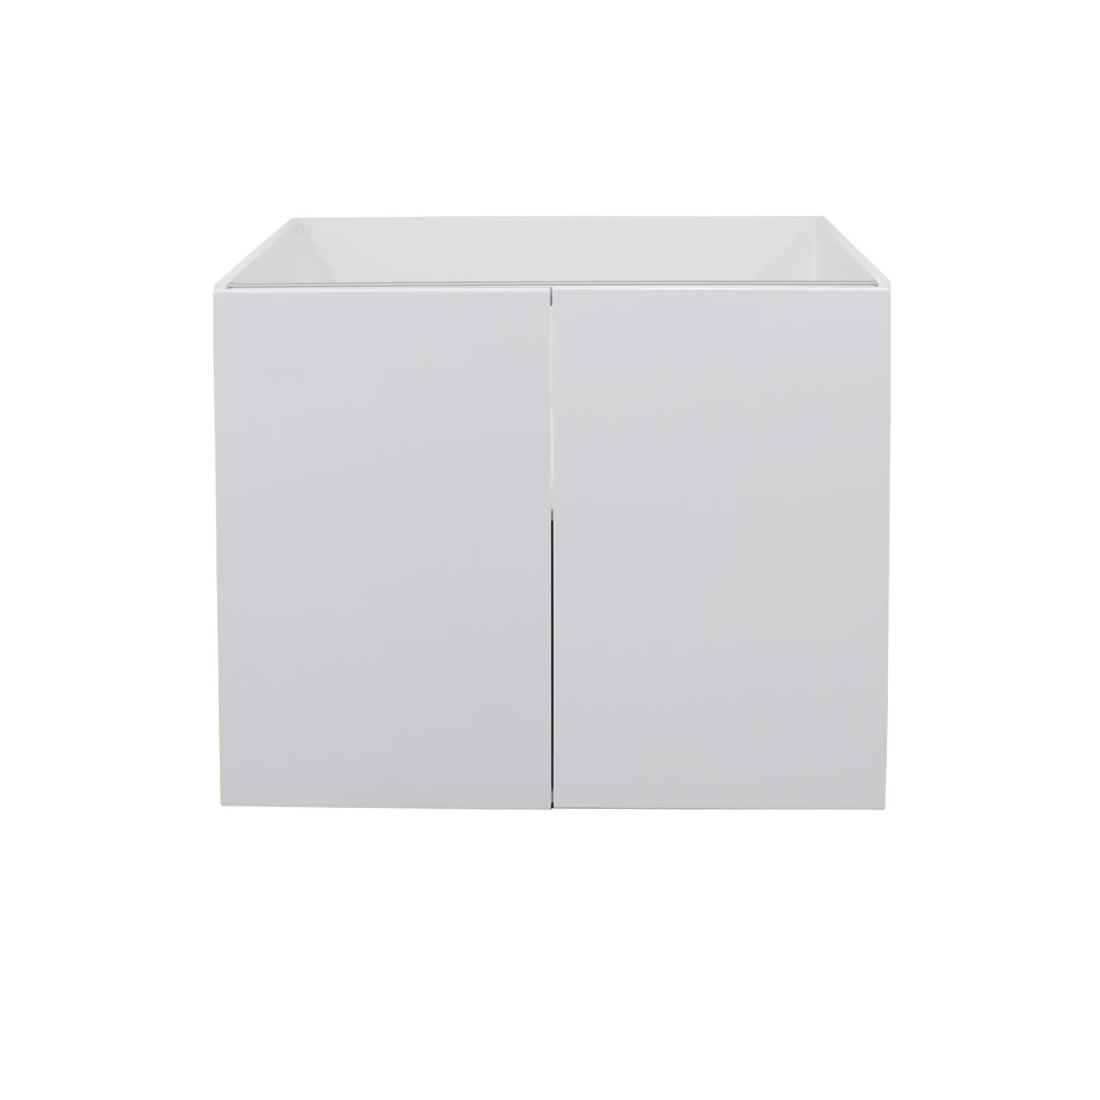 Double Laundry Sink With Cabinet : Home / Kitchen & Laundry Cabinets / Base Cabinet -Double Door 600